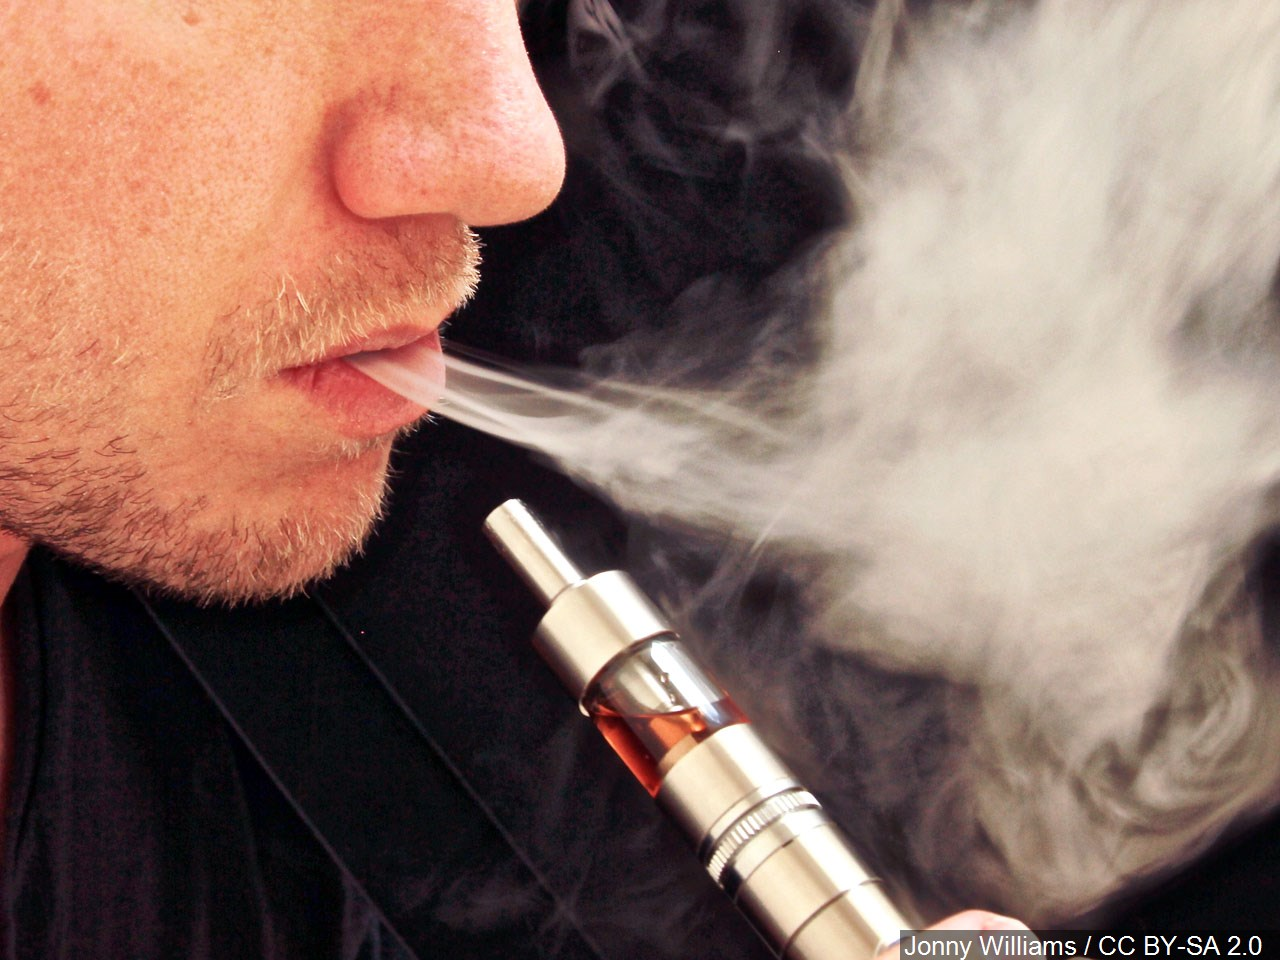 Health warnings on e cigarettes